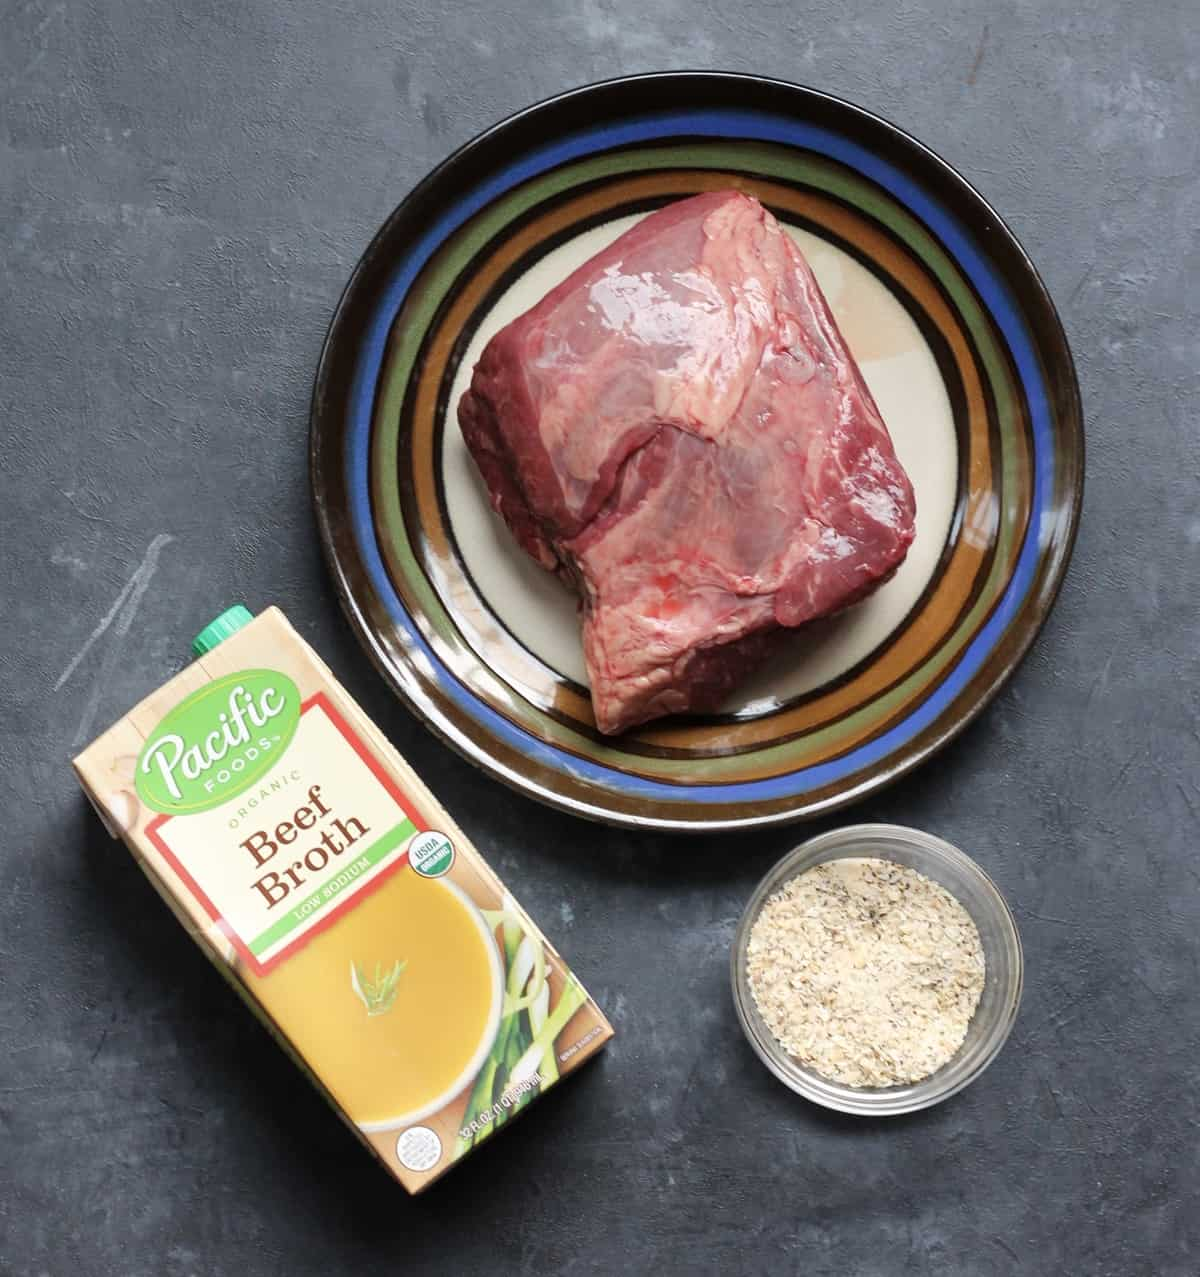 pot roast with french onion soup mix and beef broth